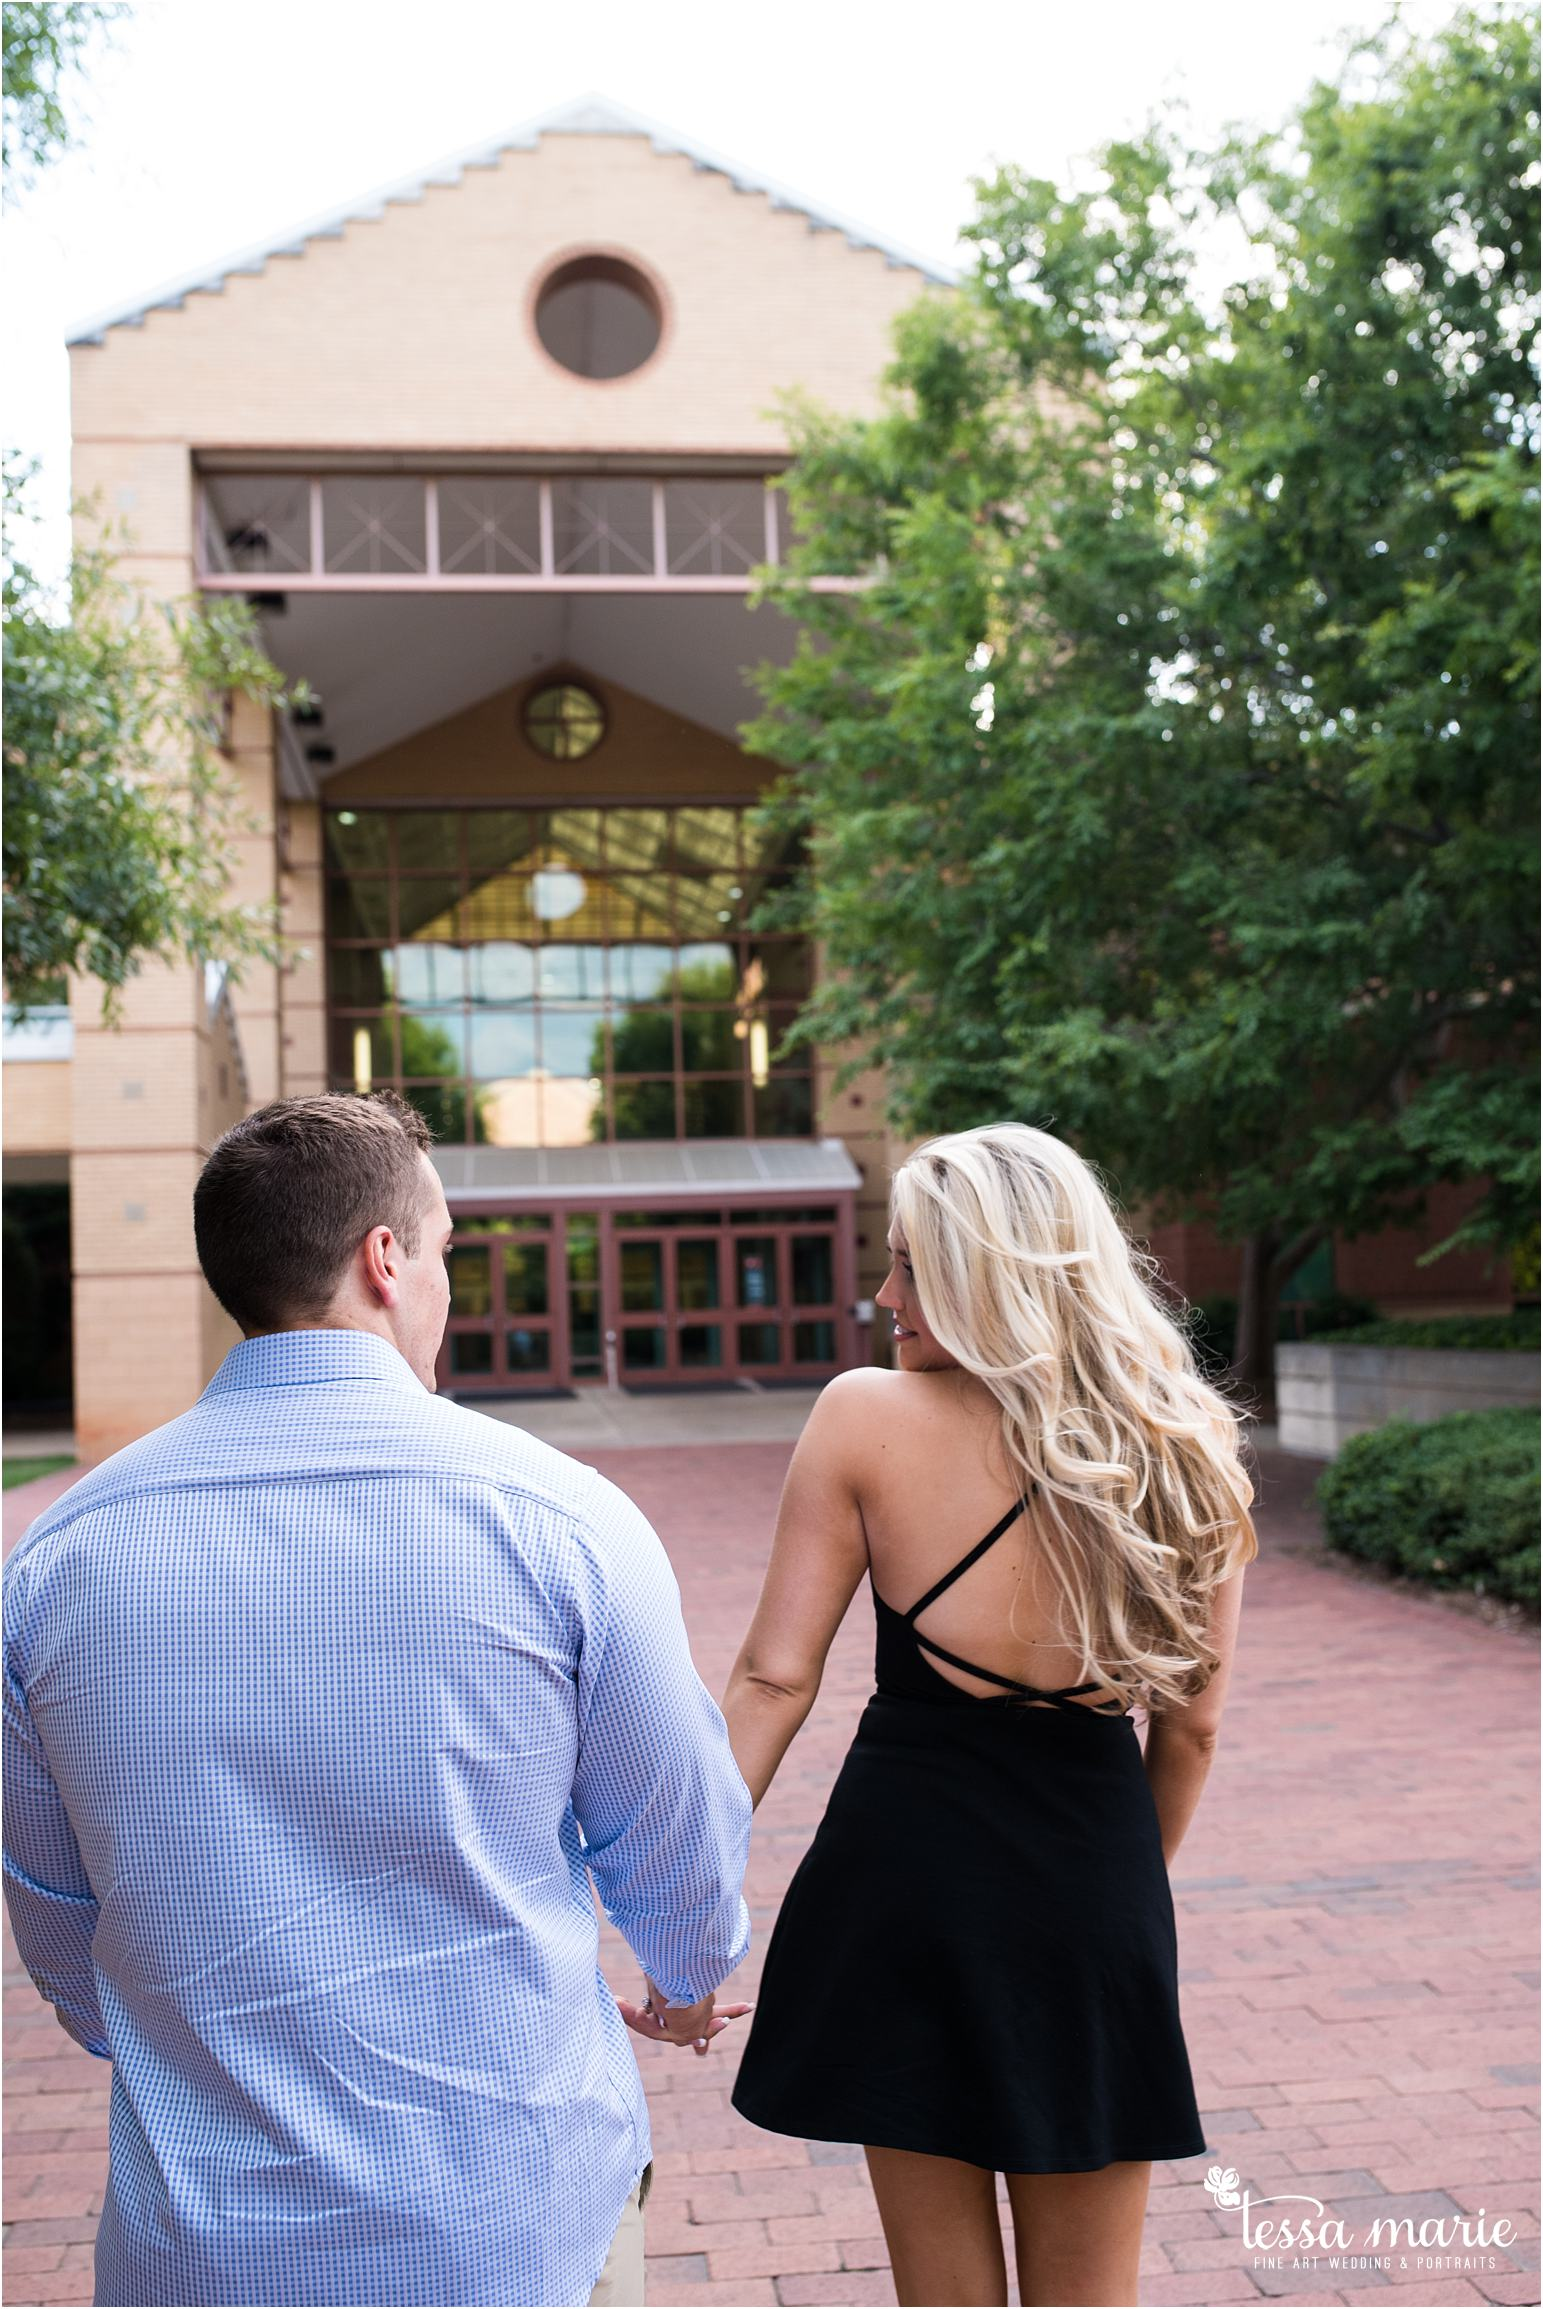 athens_ga_uga_university_of_georgia_engagement_pictures_north_campus_tessa_marie_weddings_athens_wedding_photographer_0061